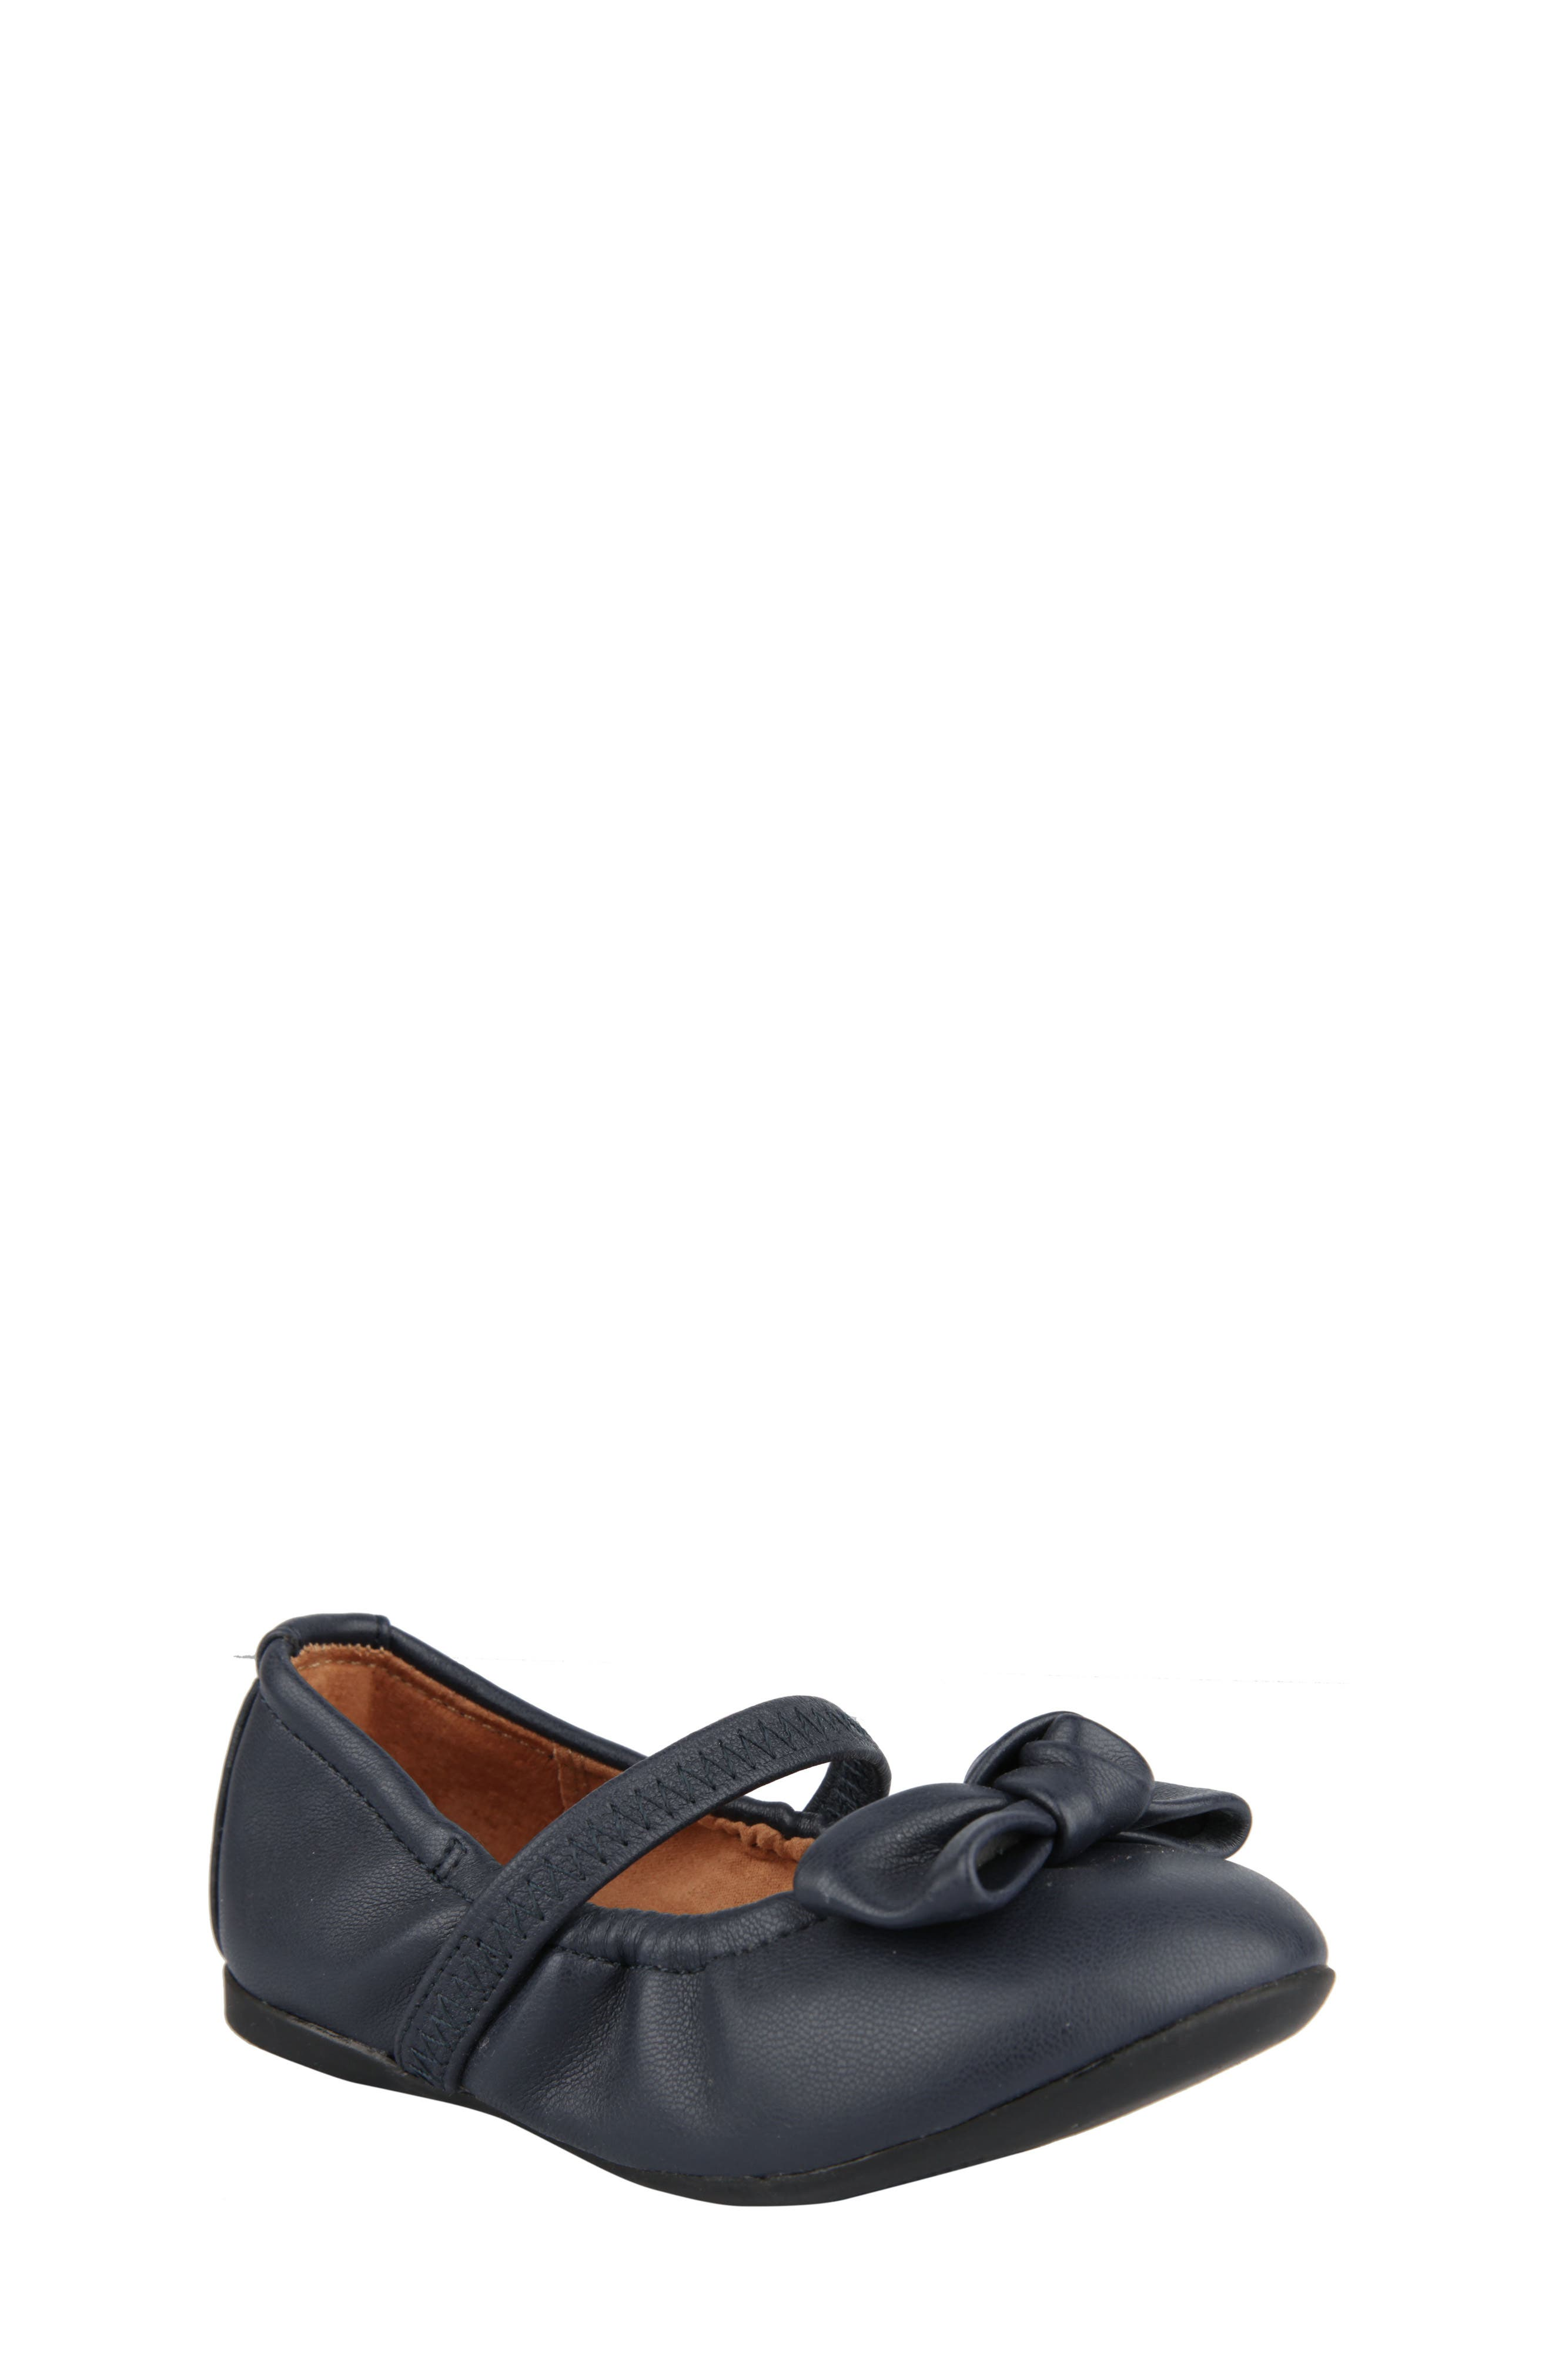 Alternate Image 1 Selected - Nina Karla Mary Jane Ballet Flat (Walker & Toddler)